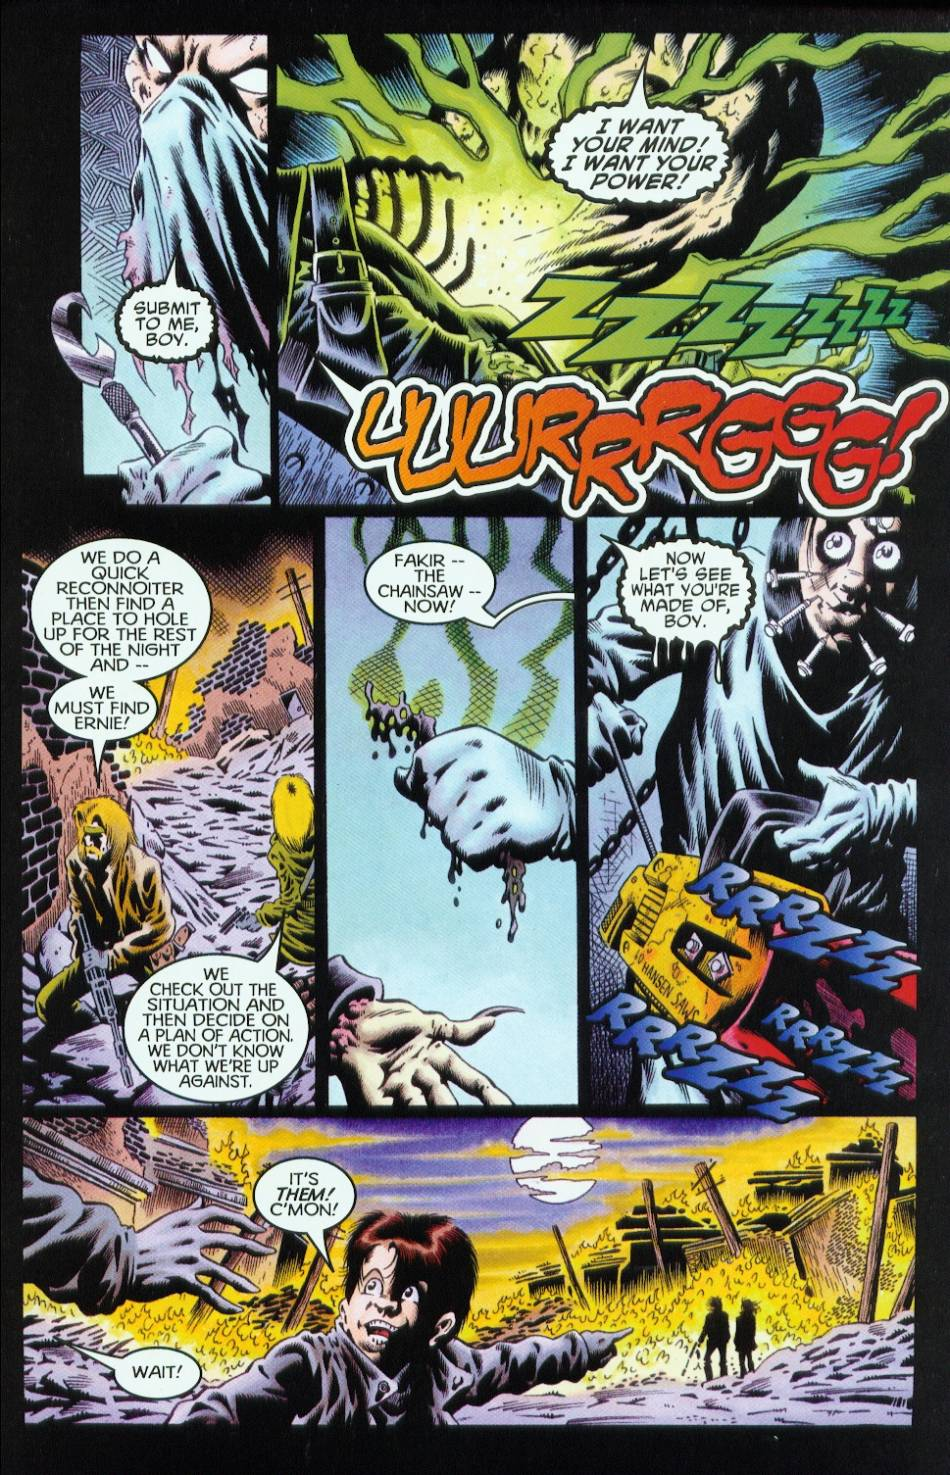 Evil Ernie: Destroyer issue 5 - Page 15